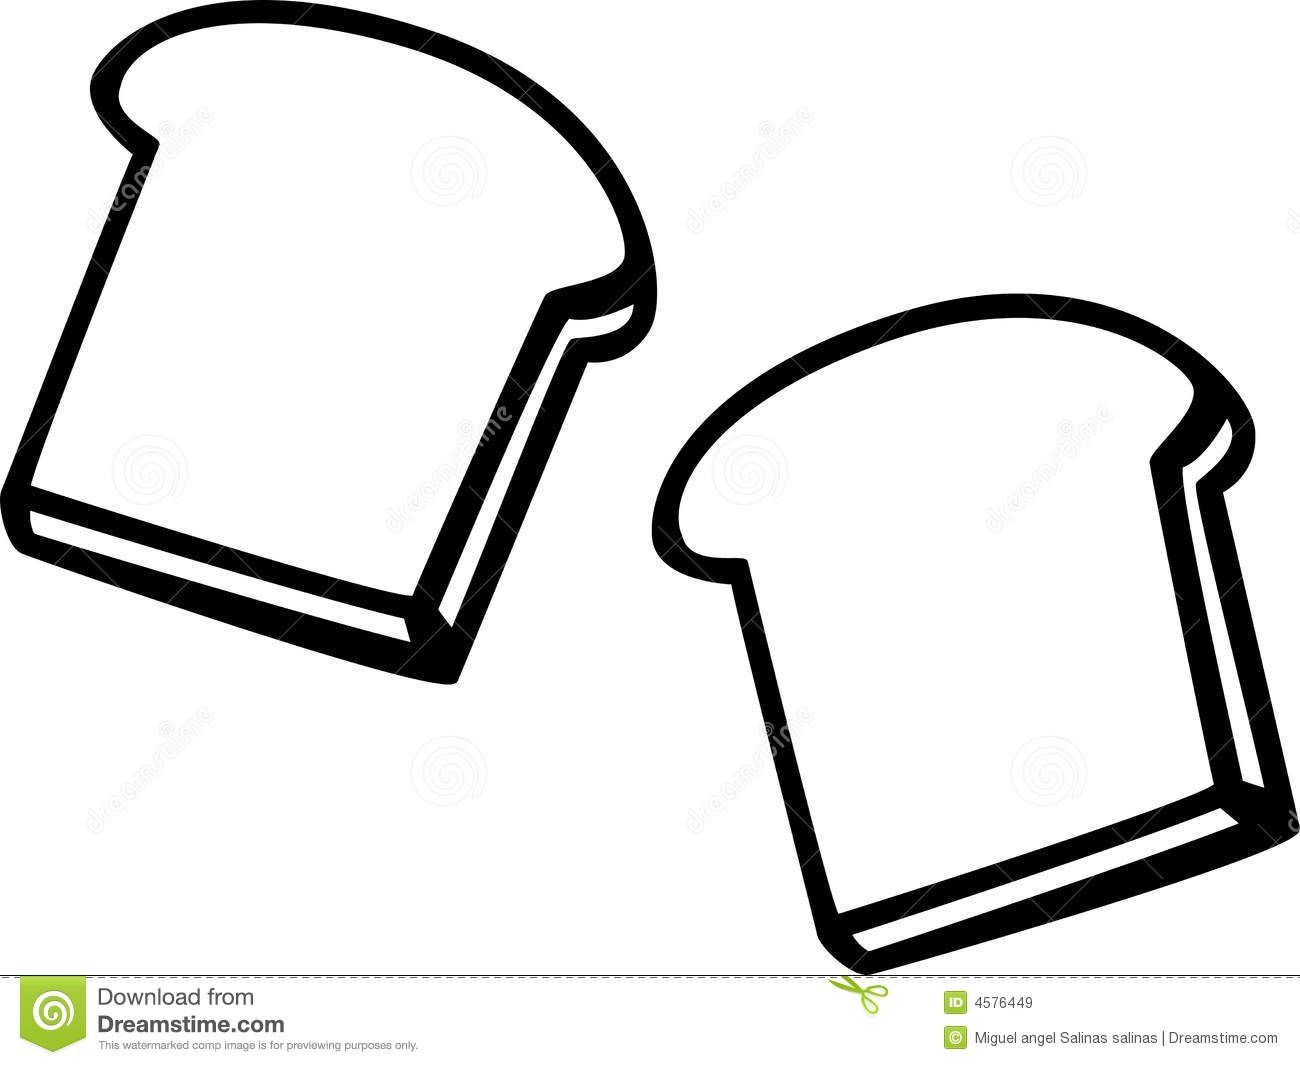 Http Thumbs Dreamstime Com Z Toast Bread Slices Vector